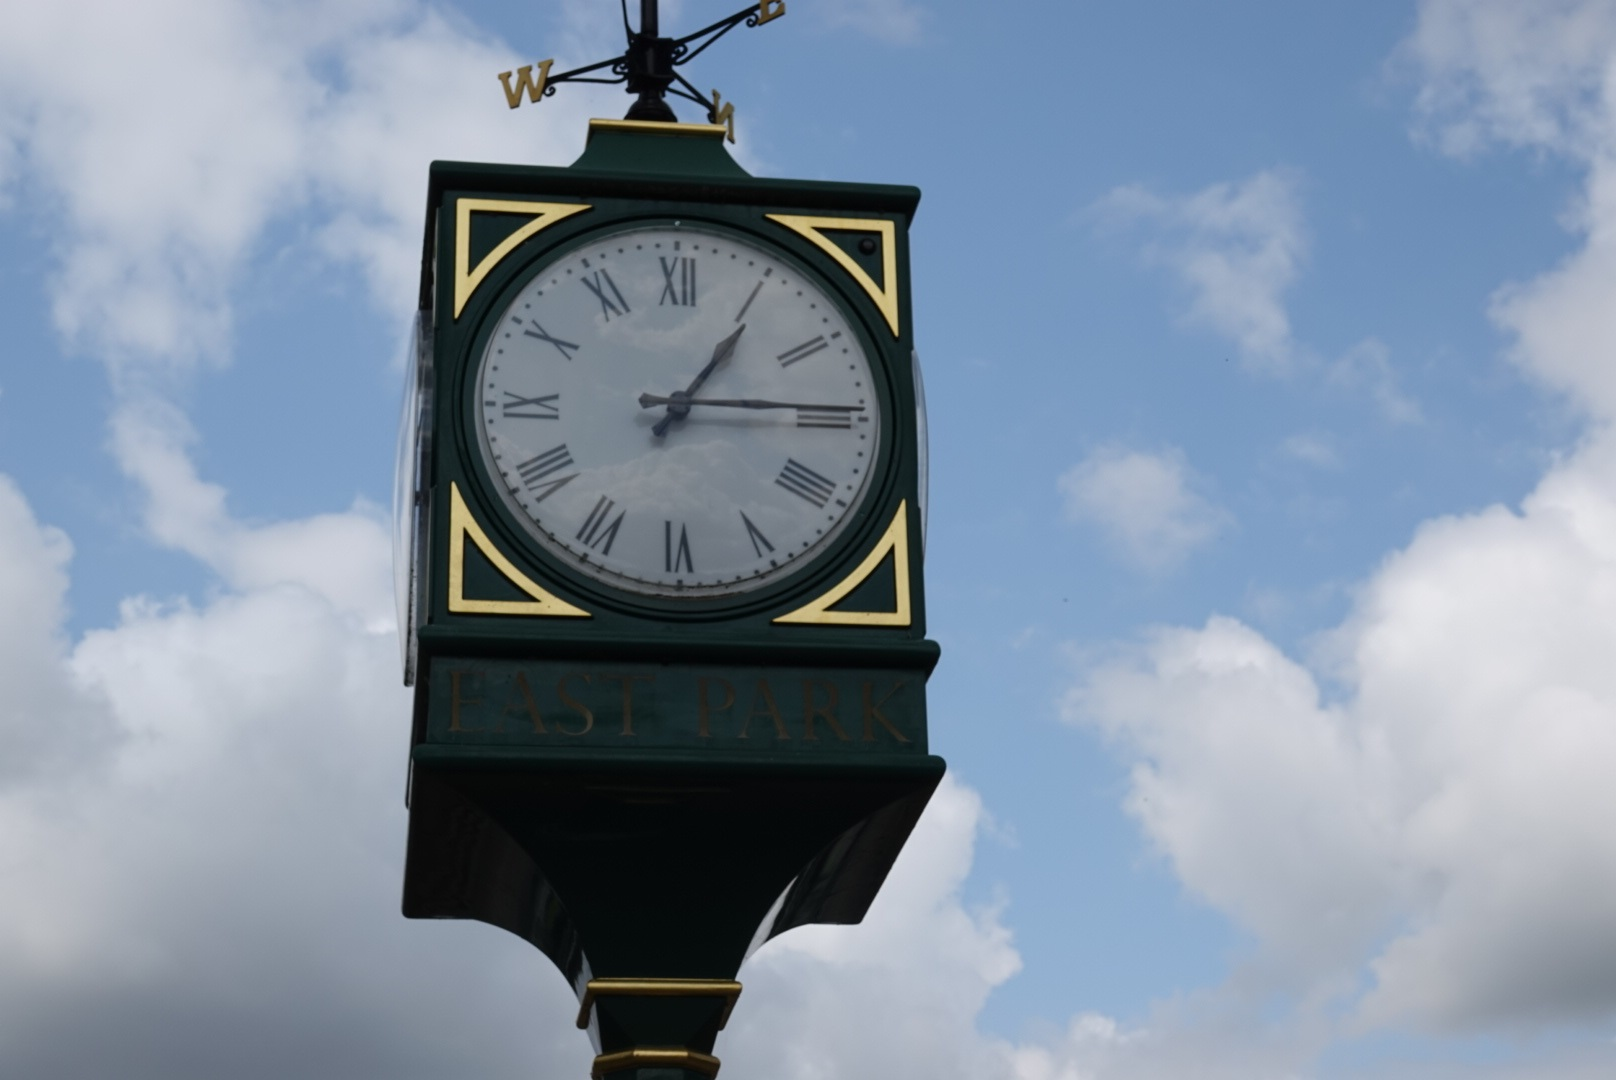 The clock at East Park.